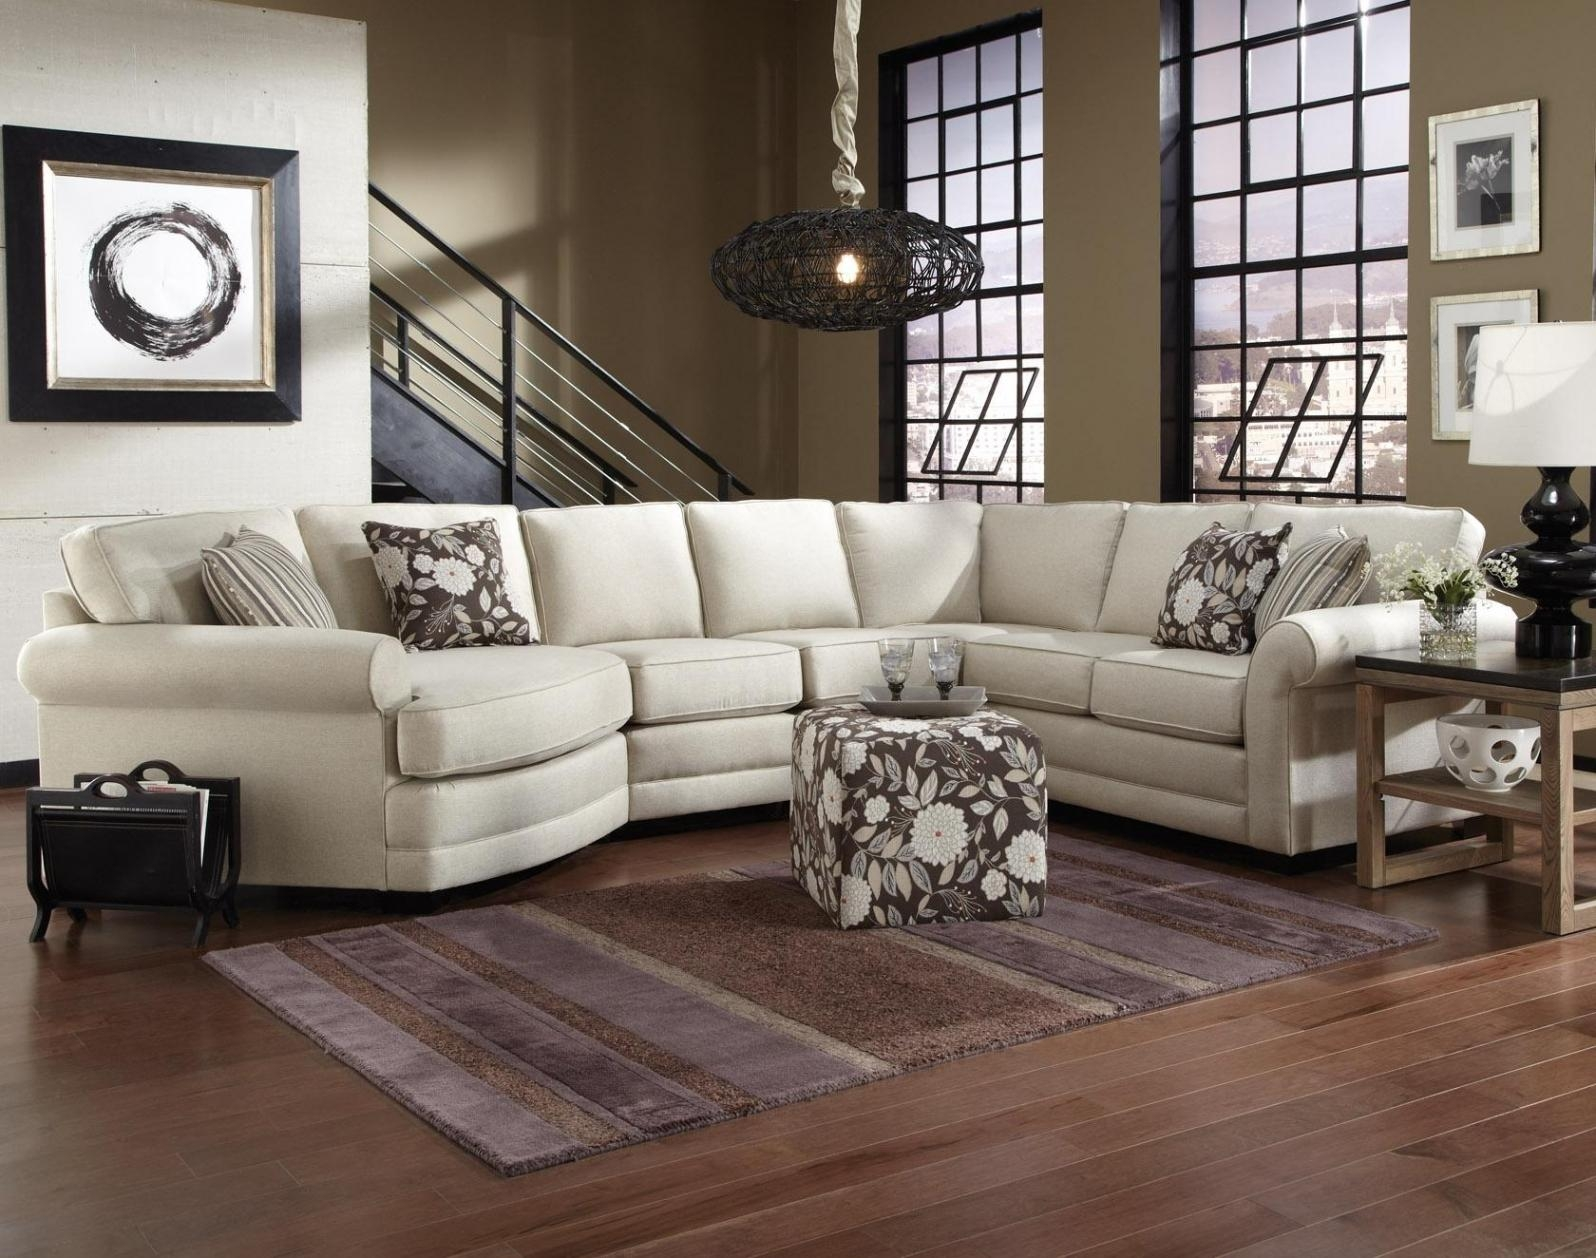 Beautiful Sectional Sofa With Cuddler Chaise | Sofa Ideas Regarding Sectional Sofa With Cuddler Chaise (View 8 of 20)